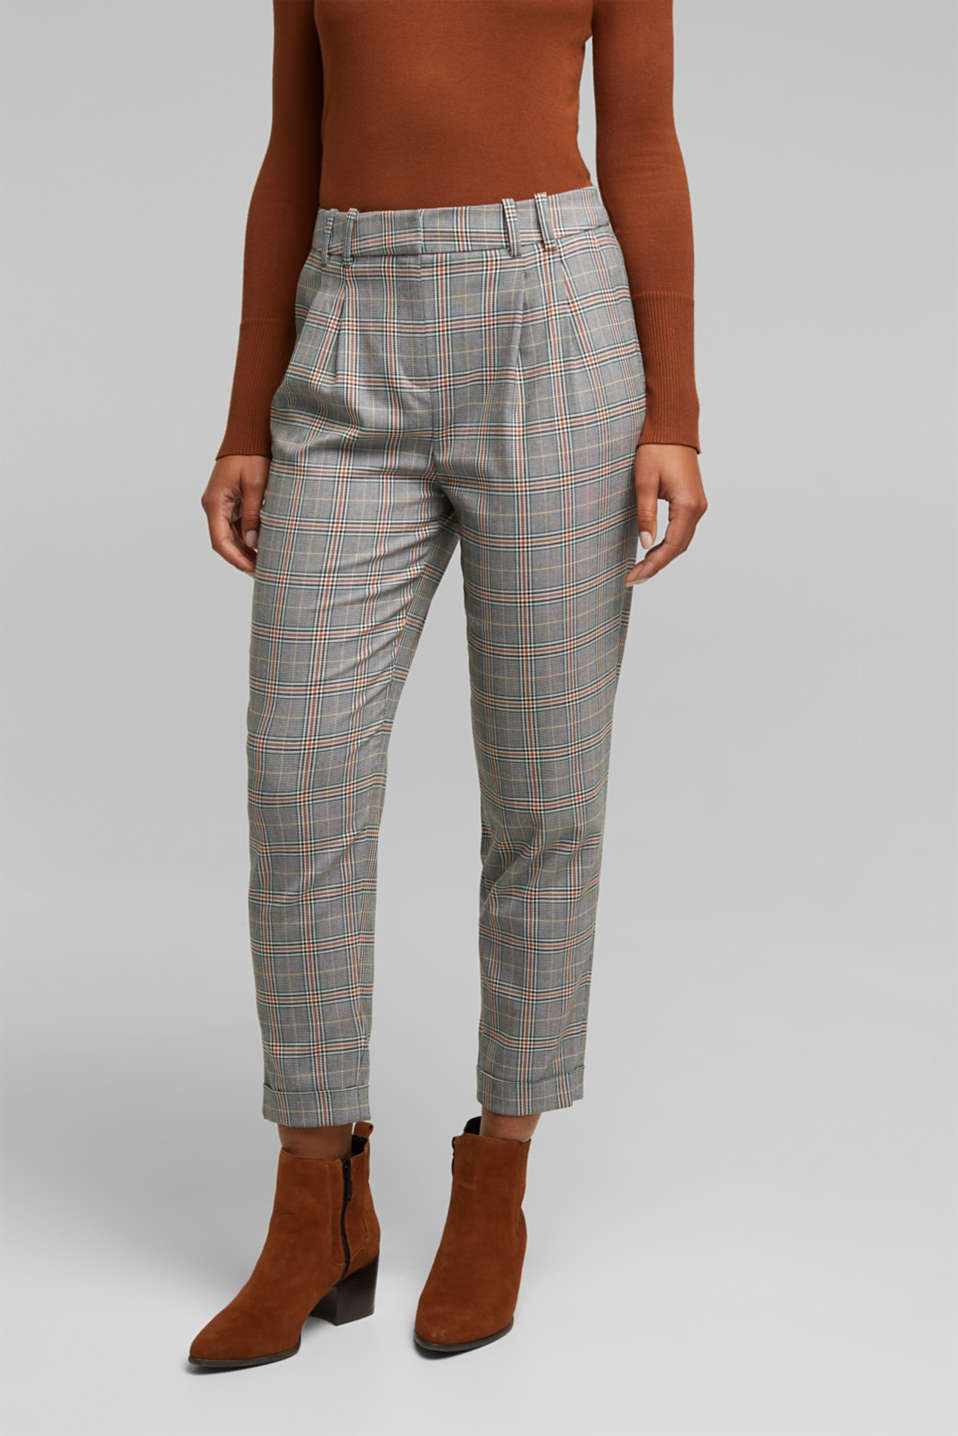 Esprit - In materiale riciclato: chino NEW CHECK Mix + Match